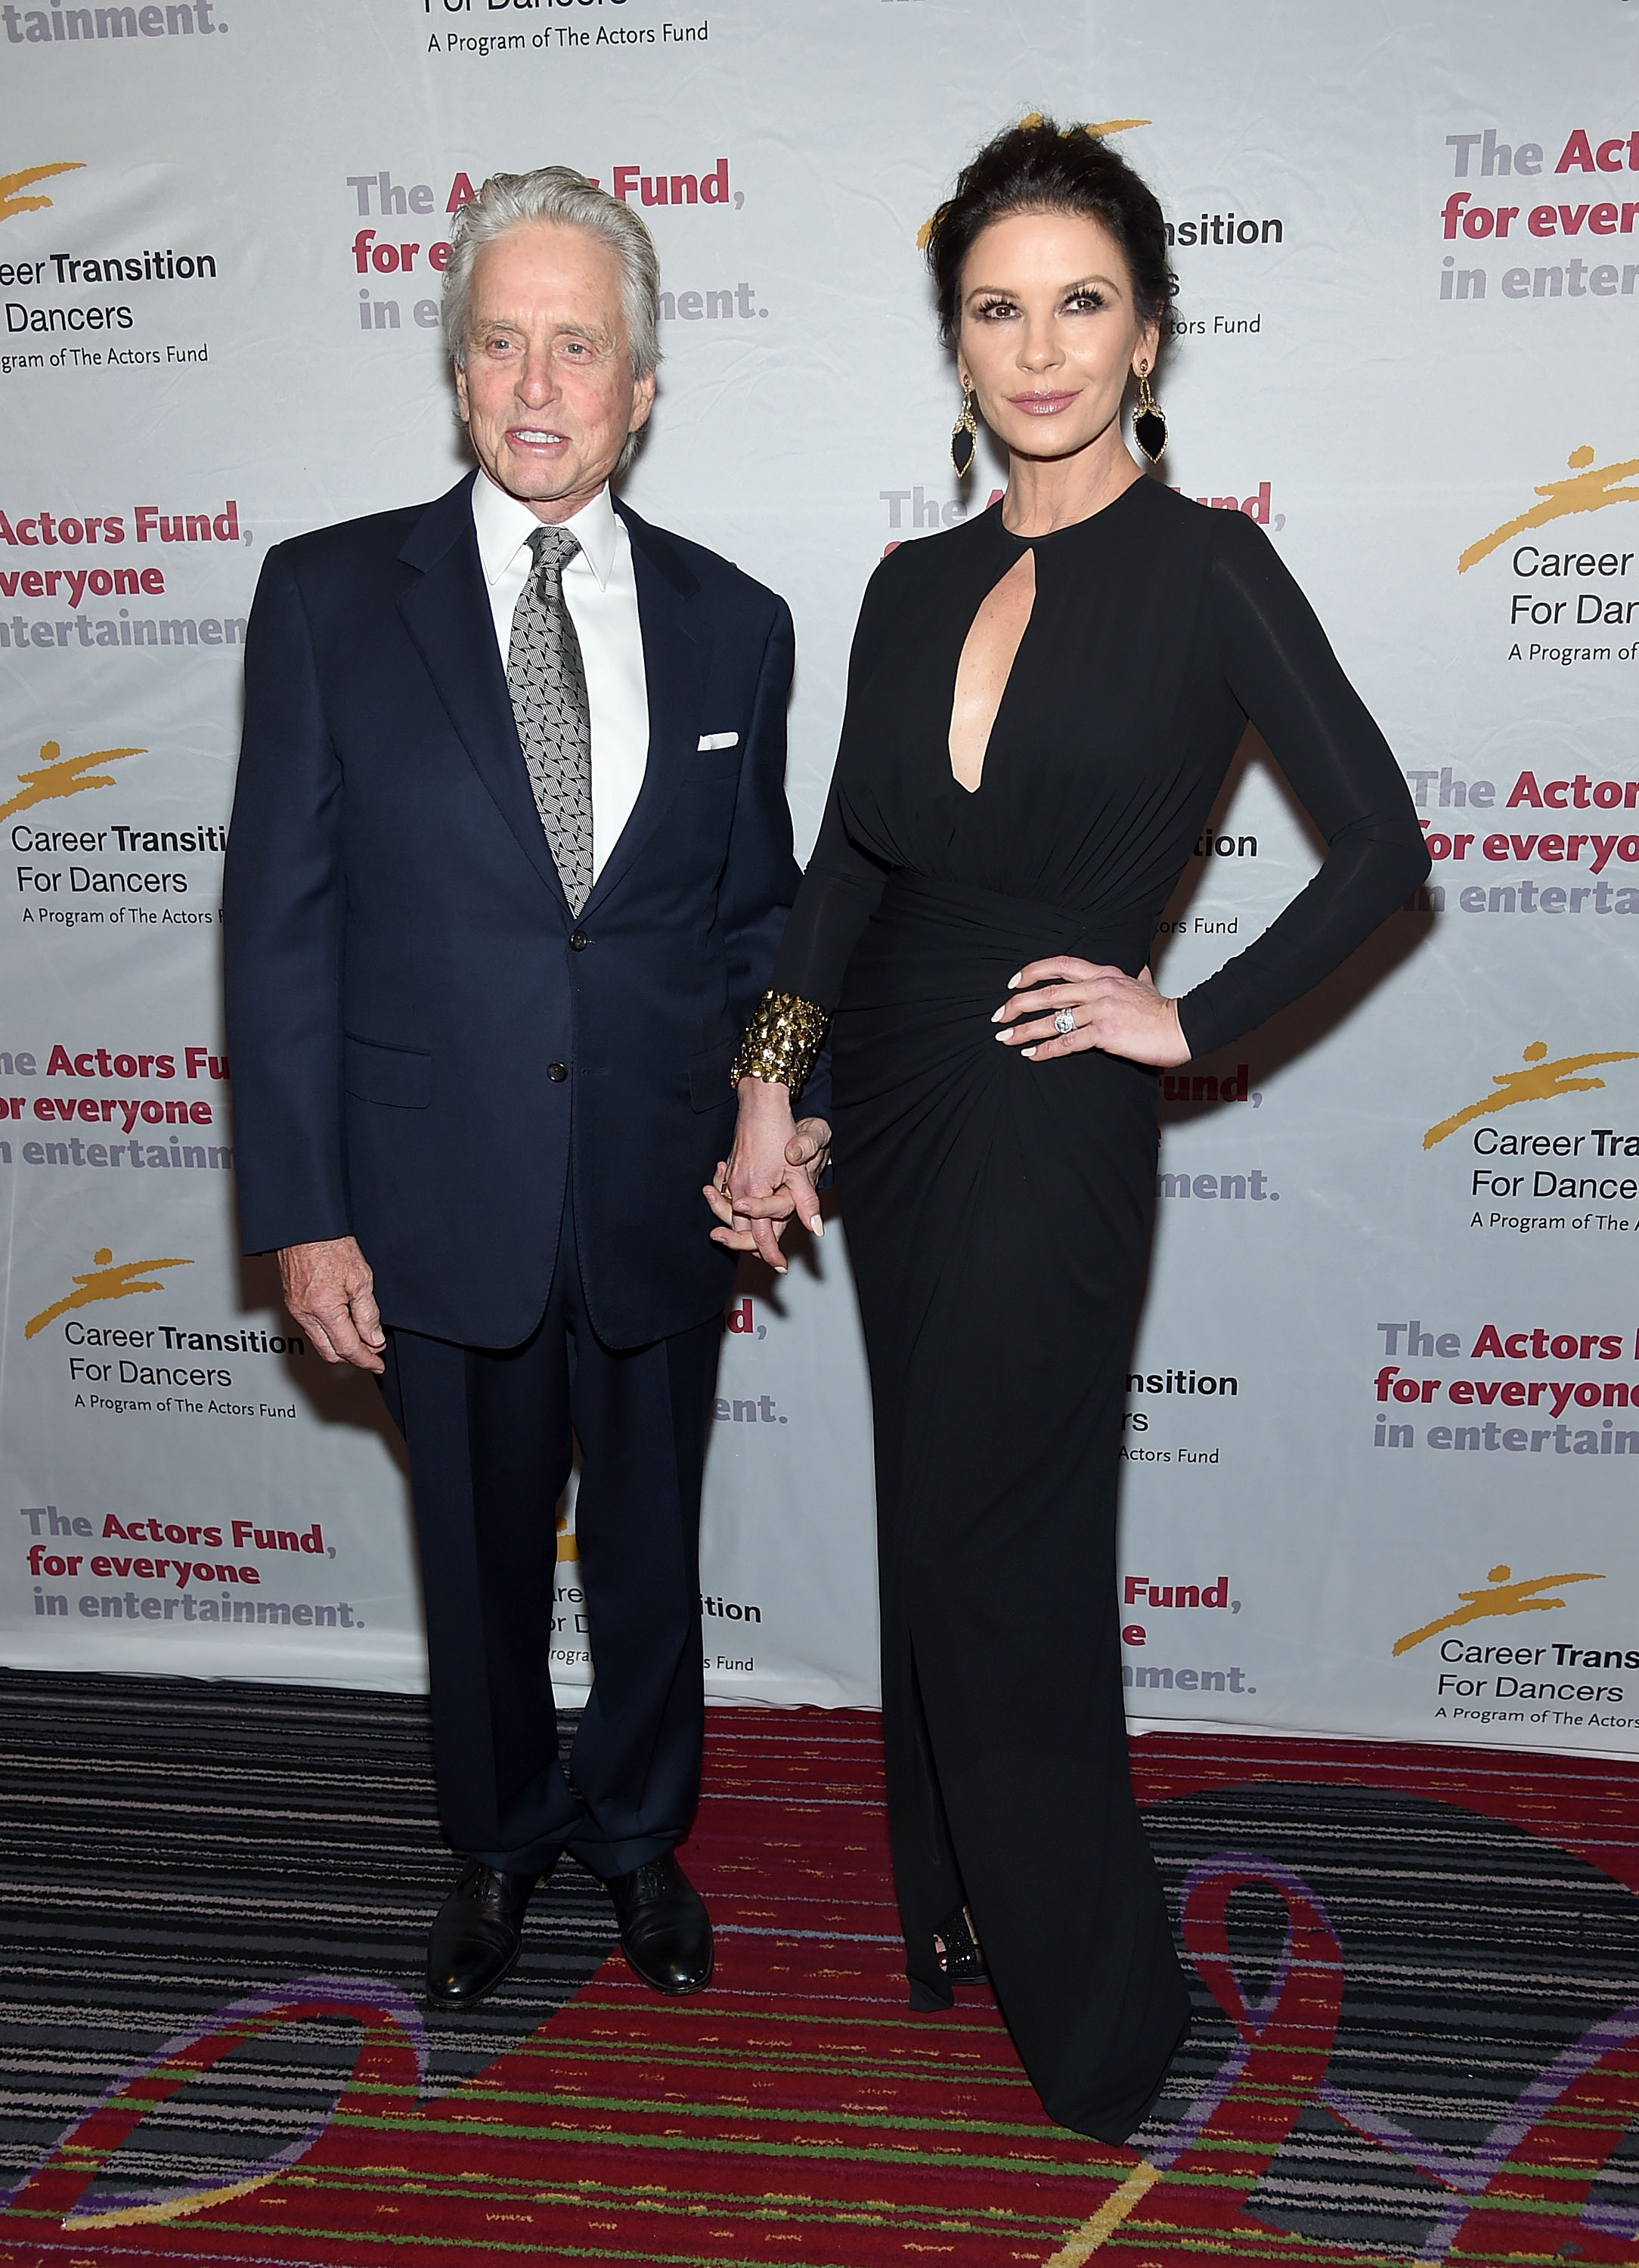 Michael Douglas and Catherine Zeta-Jones attend The Actor's Fund Career Transition For Dancers 2017 Jubilee Gala on November 1, 2017 in New York City. (Photo by Jamie McCarthy/Getty Images)